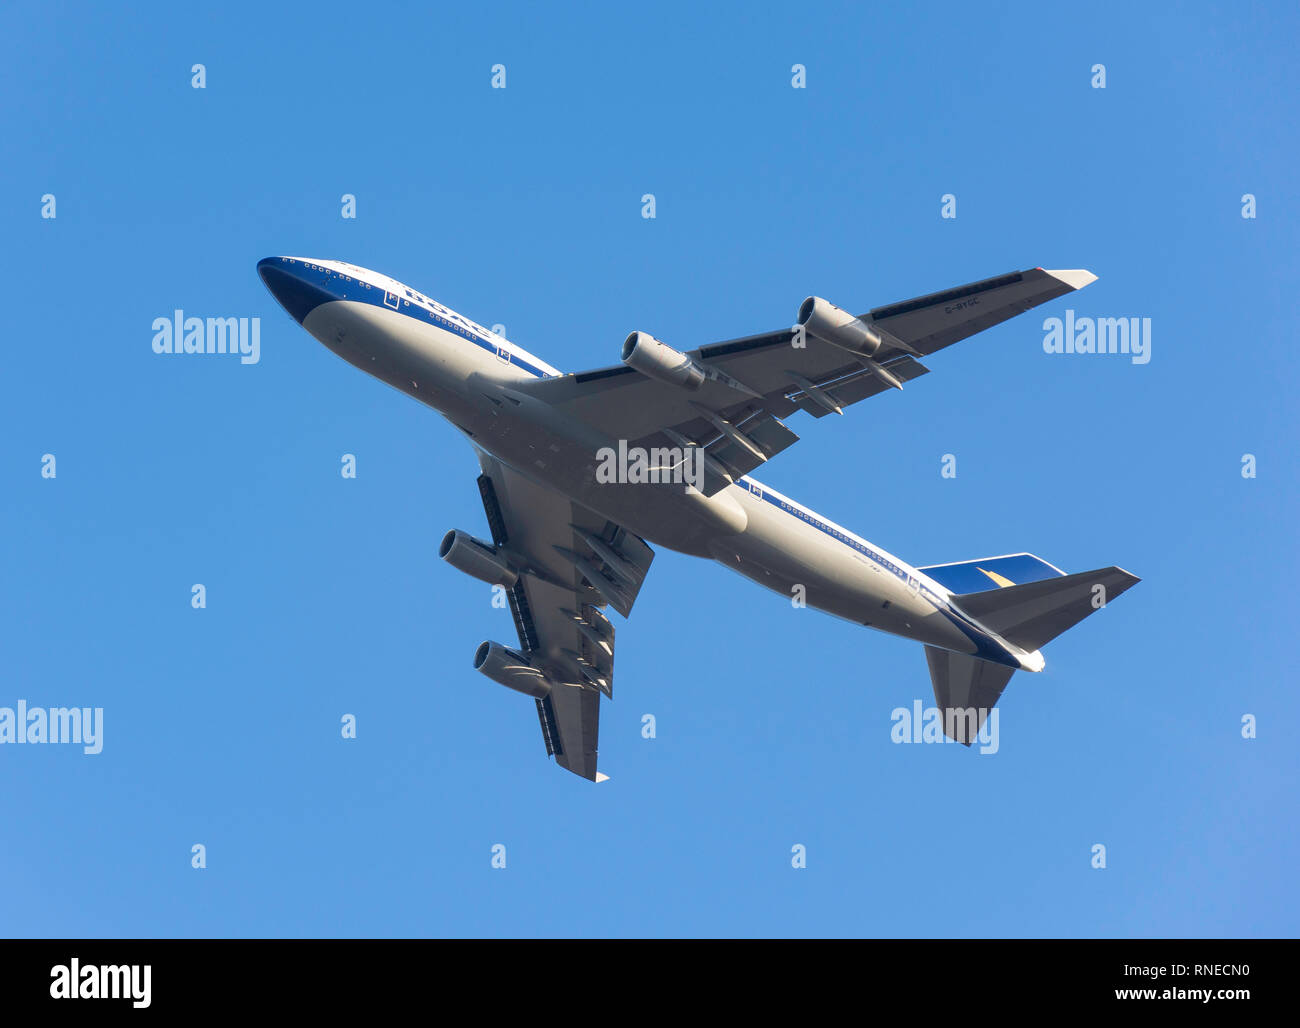 London Heathrow, UK. 19th Feb 2019. British Airways Boeing 747-436 aircraft (100 Retro-in old BOAC livery) taking off from Heathrow Airport, Greater London, England, United Kingdom Credit: Greg Balfour Evans/Alamy Live News - Stock Image